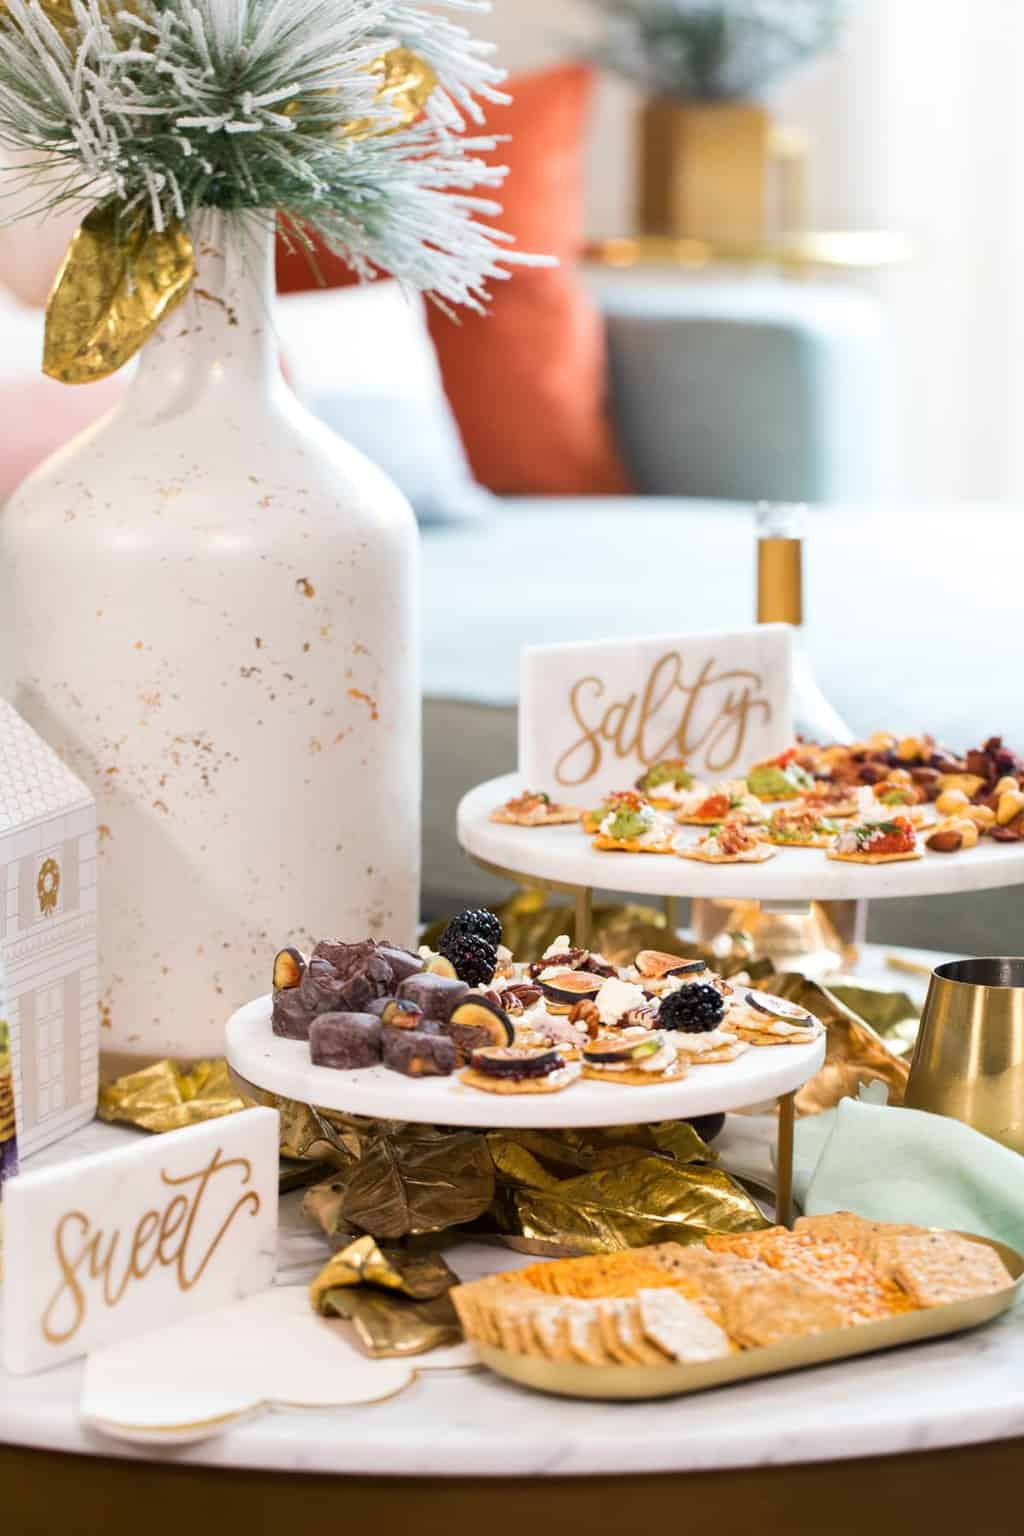 sweet and salty burschetta - How to Make a Bruschetta Recipe Bar by top Houston lifestyle blogger Ashley Rose of Sugar & Cloth #recipe #bruschetta #bar #ideas #entertaining #howto #easy